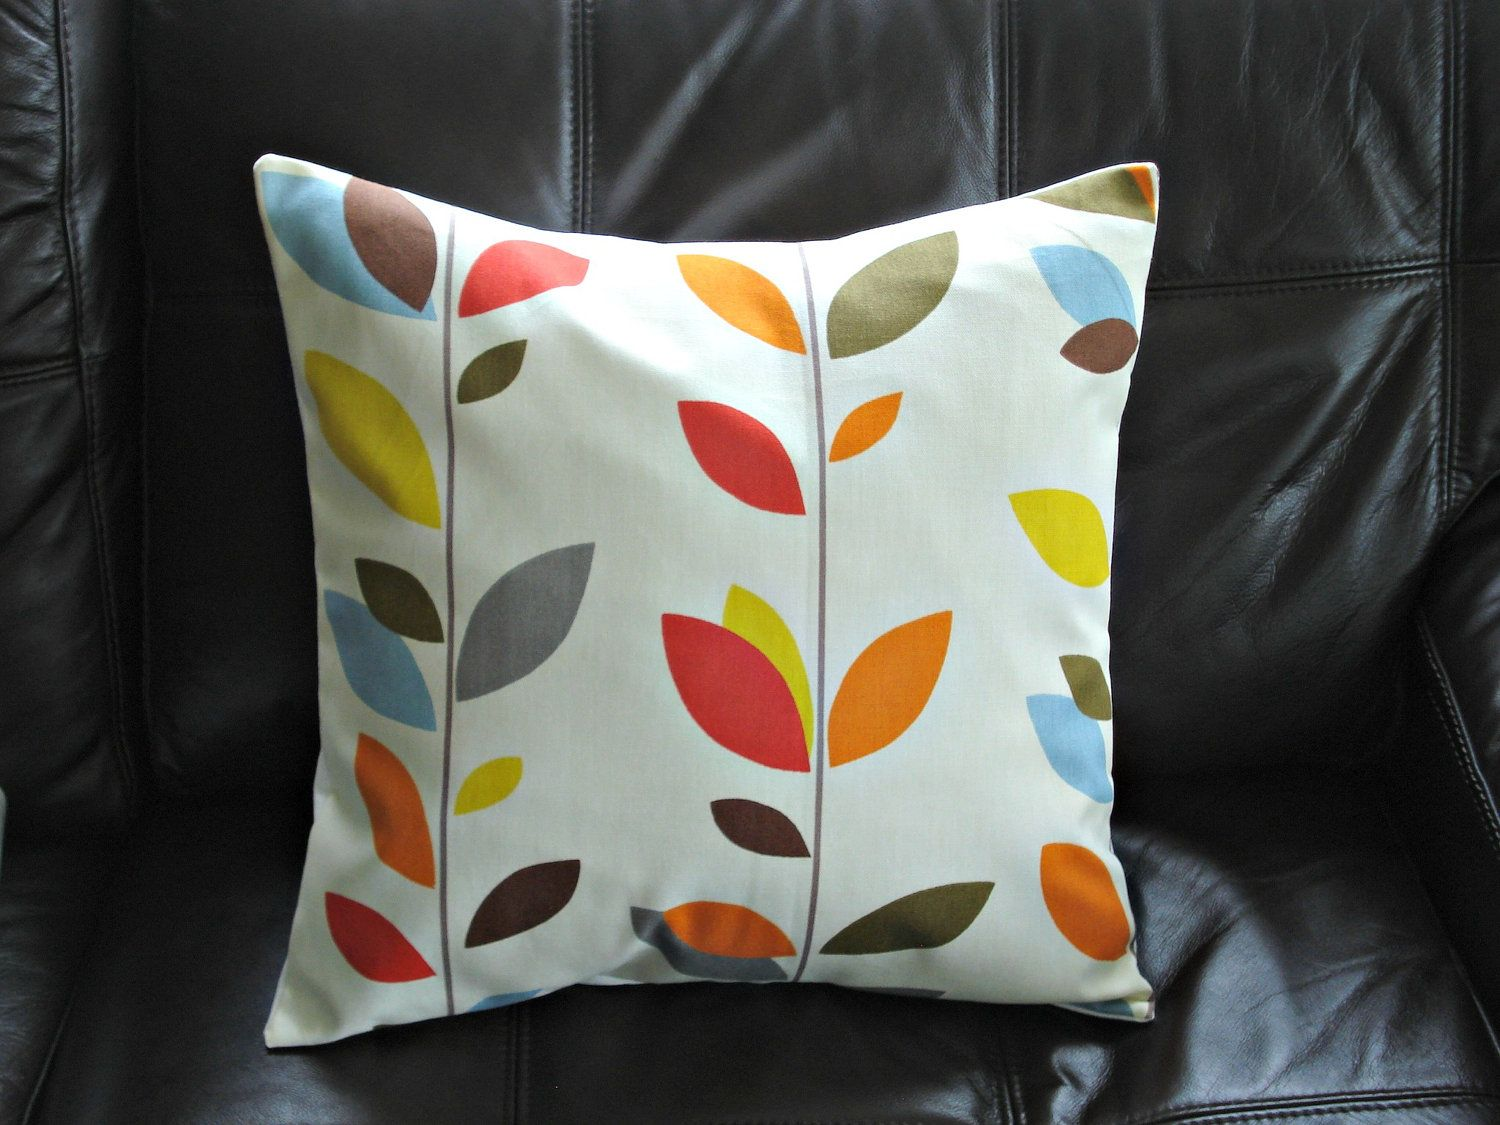 Pillow orange blue olive red yellow grey gray brown 18 inch leaf design cushion shams fabric covers handmade. $25.00, via Etsy.